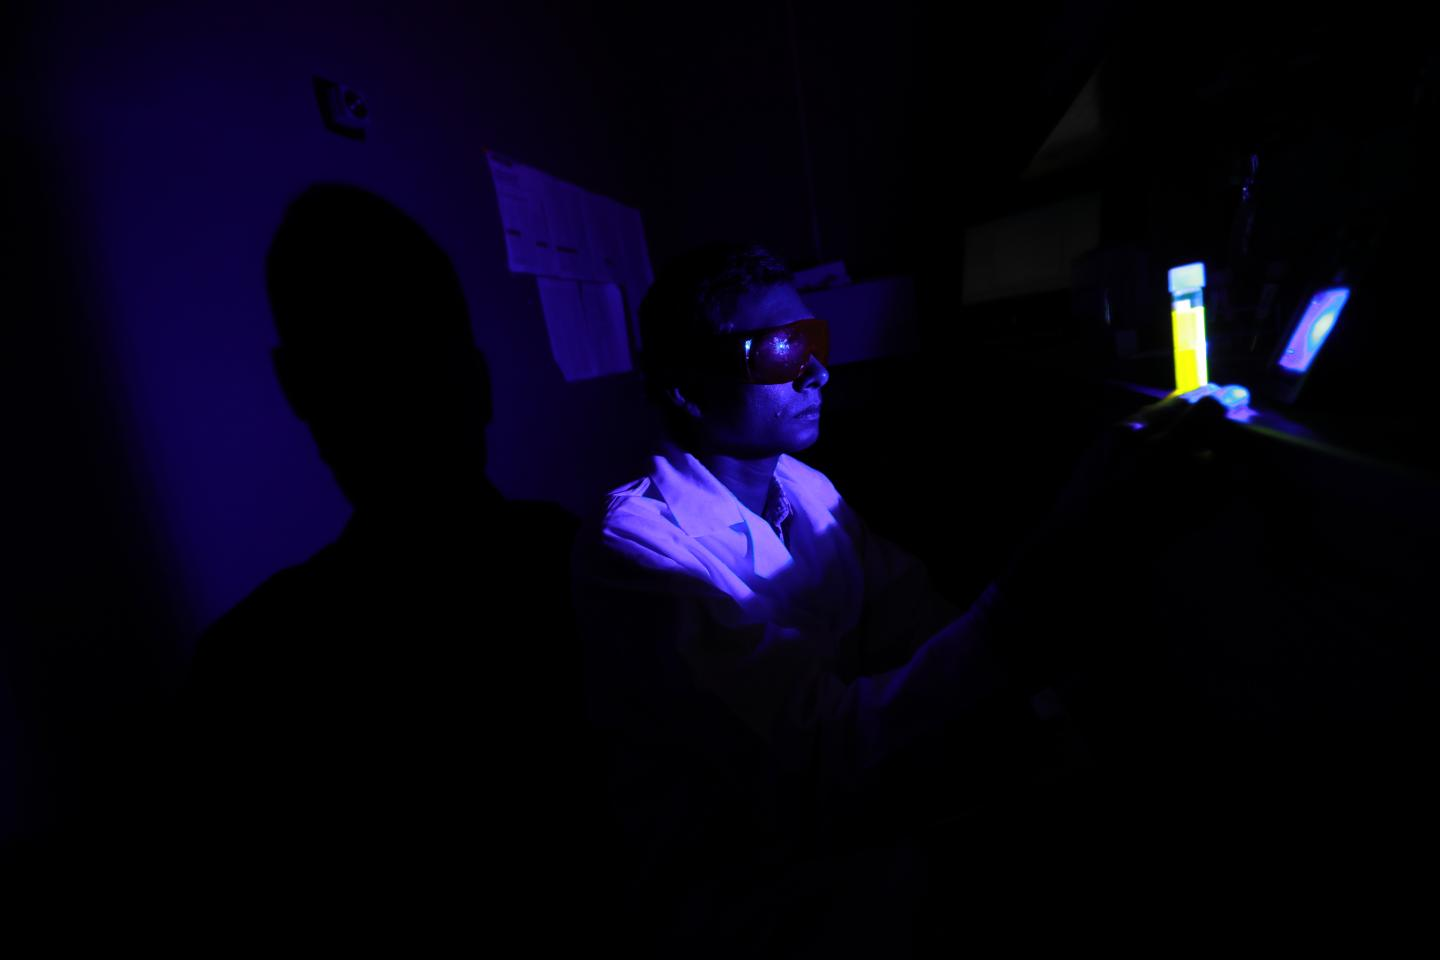 Dr. Ajith Karunarathne examined toxic oxygen generation by retinal during blue light exposure. Courtesy of Dan Miller, The University of Toledo.